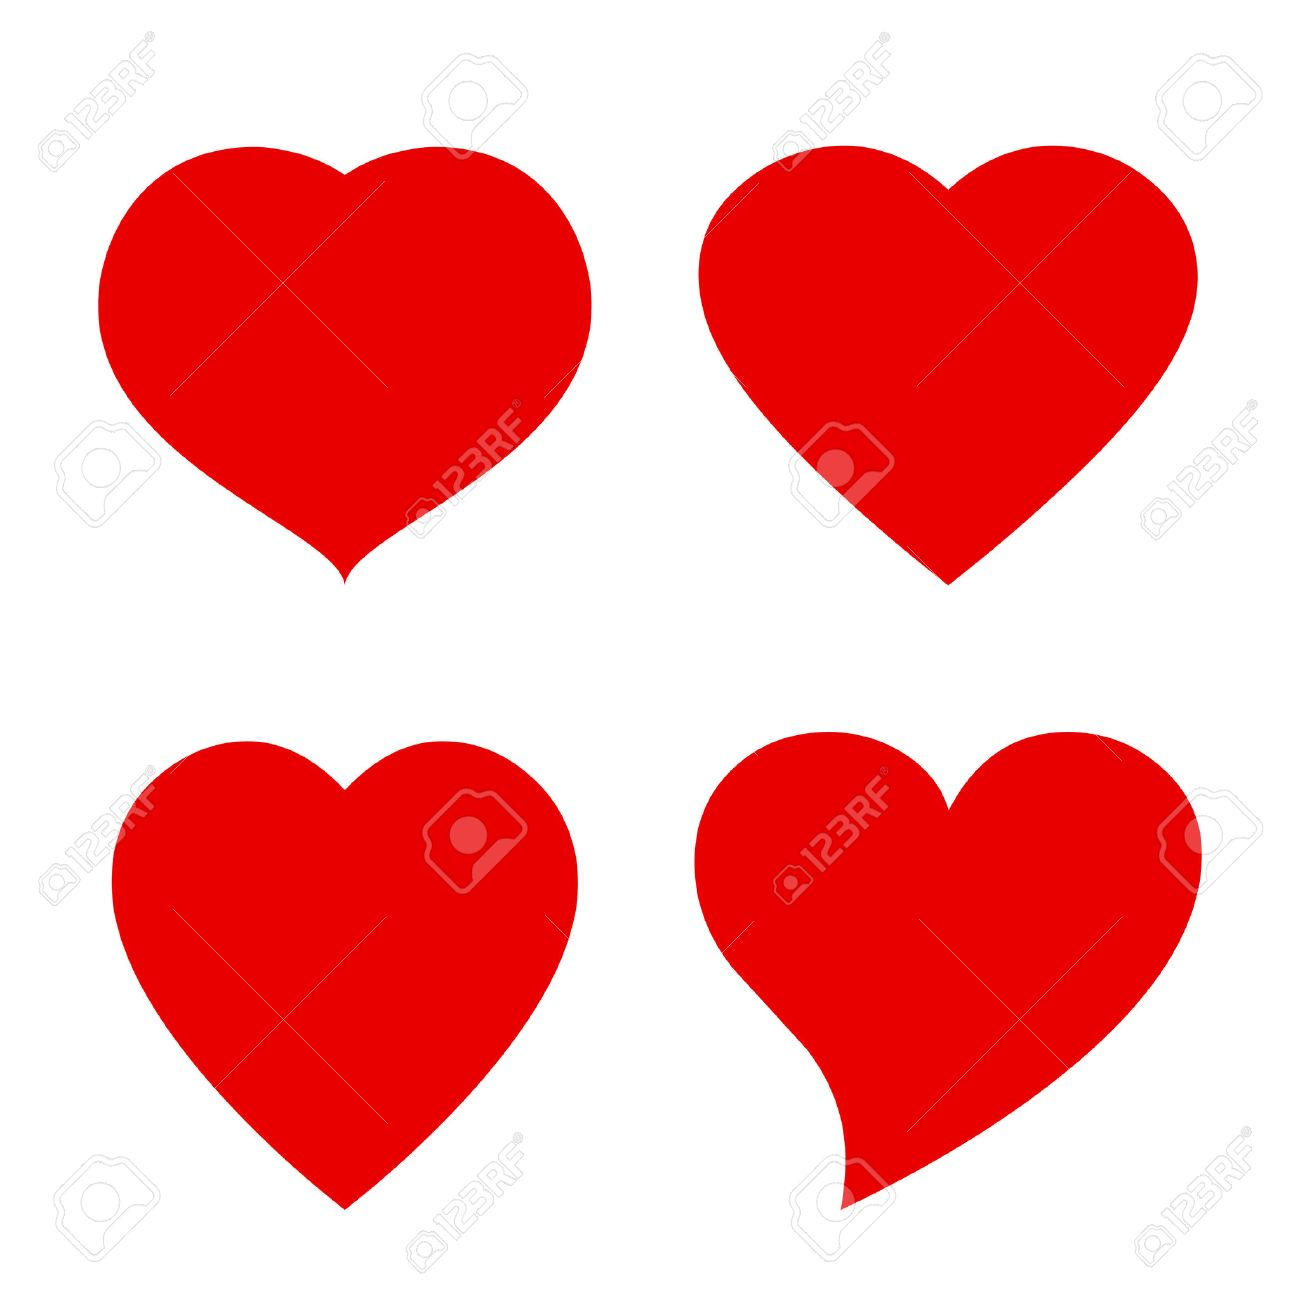 vector heart shape icon royalty free cliparts vectors and stock rh 123rf com free vector heart graphic free vector heart beat